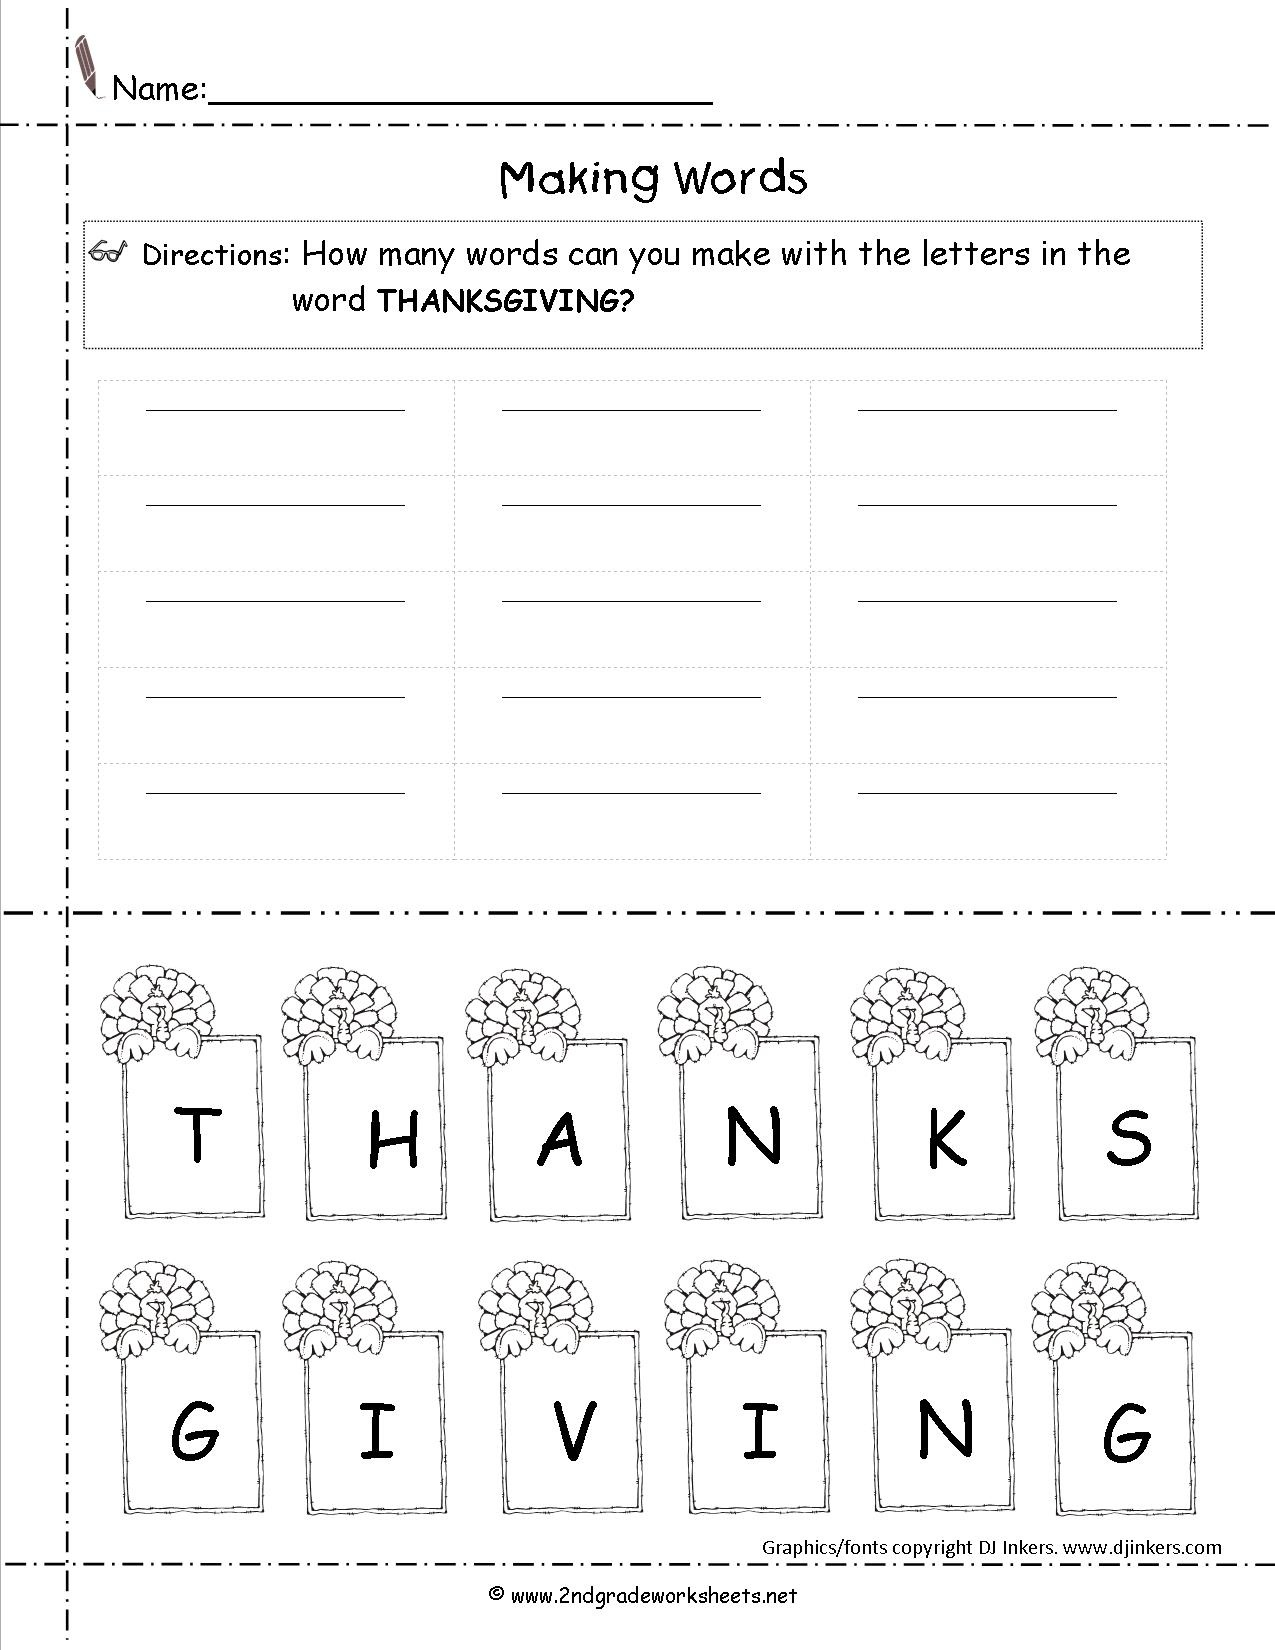 Thanksgiving Printouts And Worksheets - Math Worksheets Thanksgiving Free Printable